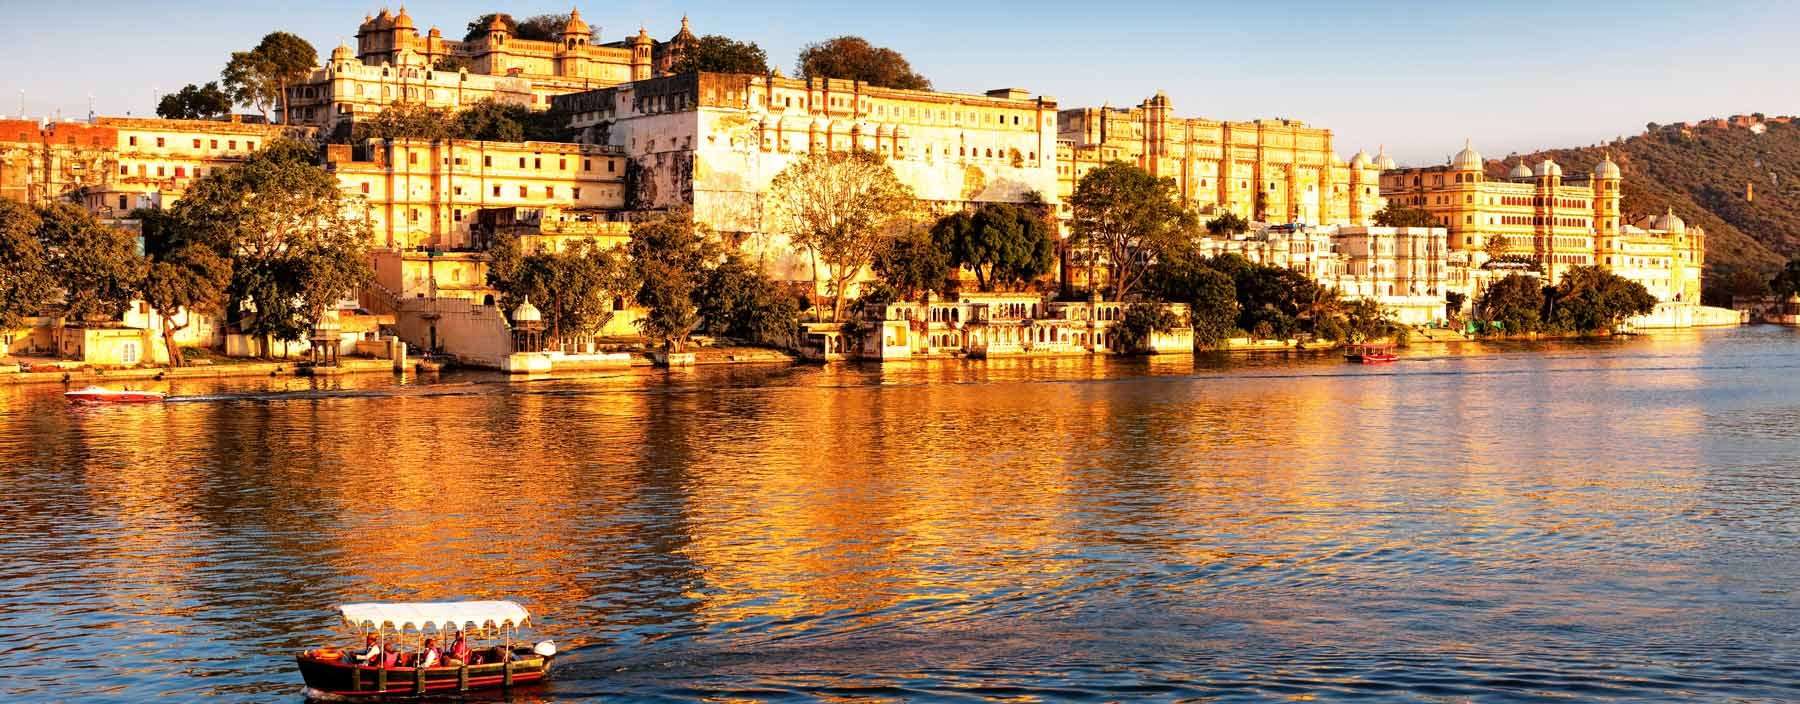 in, udaipur, lake pichola and city palace.jpg